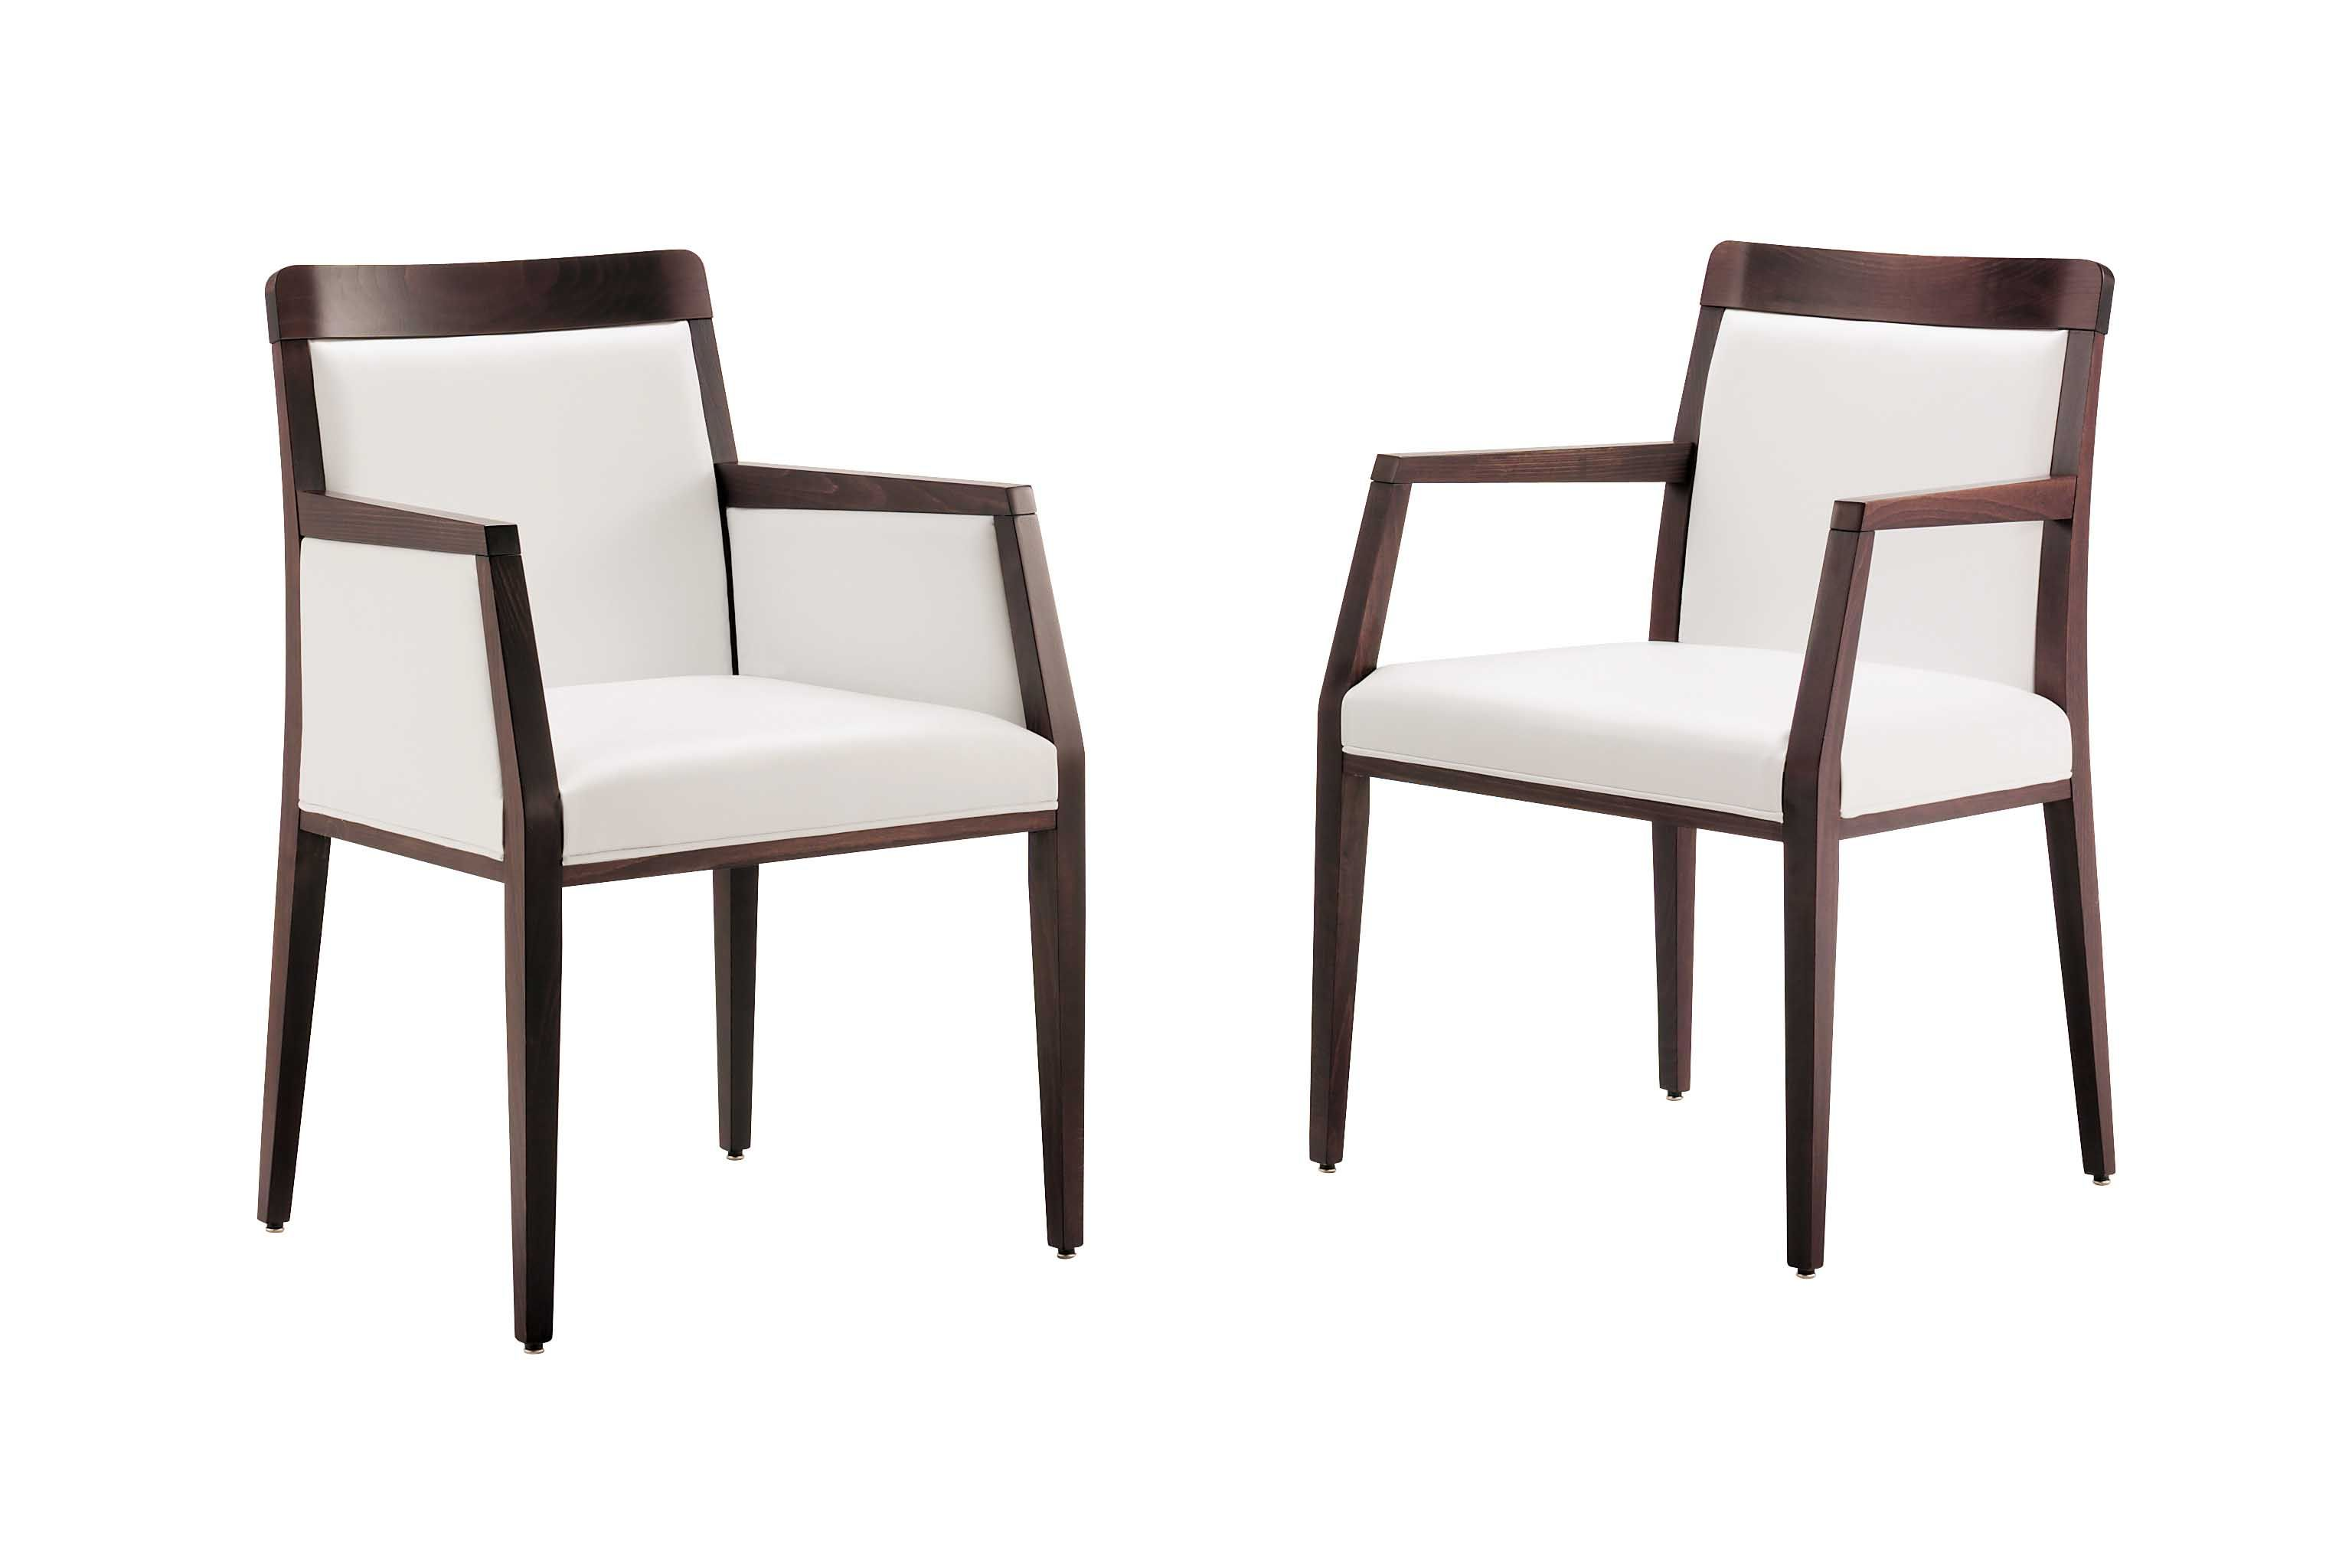 Finding The Restaurant Furniture Styles You Want Can Be Difficult And Time  Consuming, But With Our Versatility And Wide Range Of Beautiful Durable  Fabrics ...